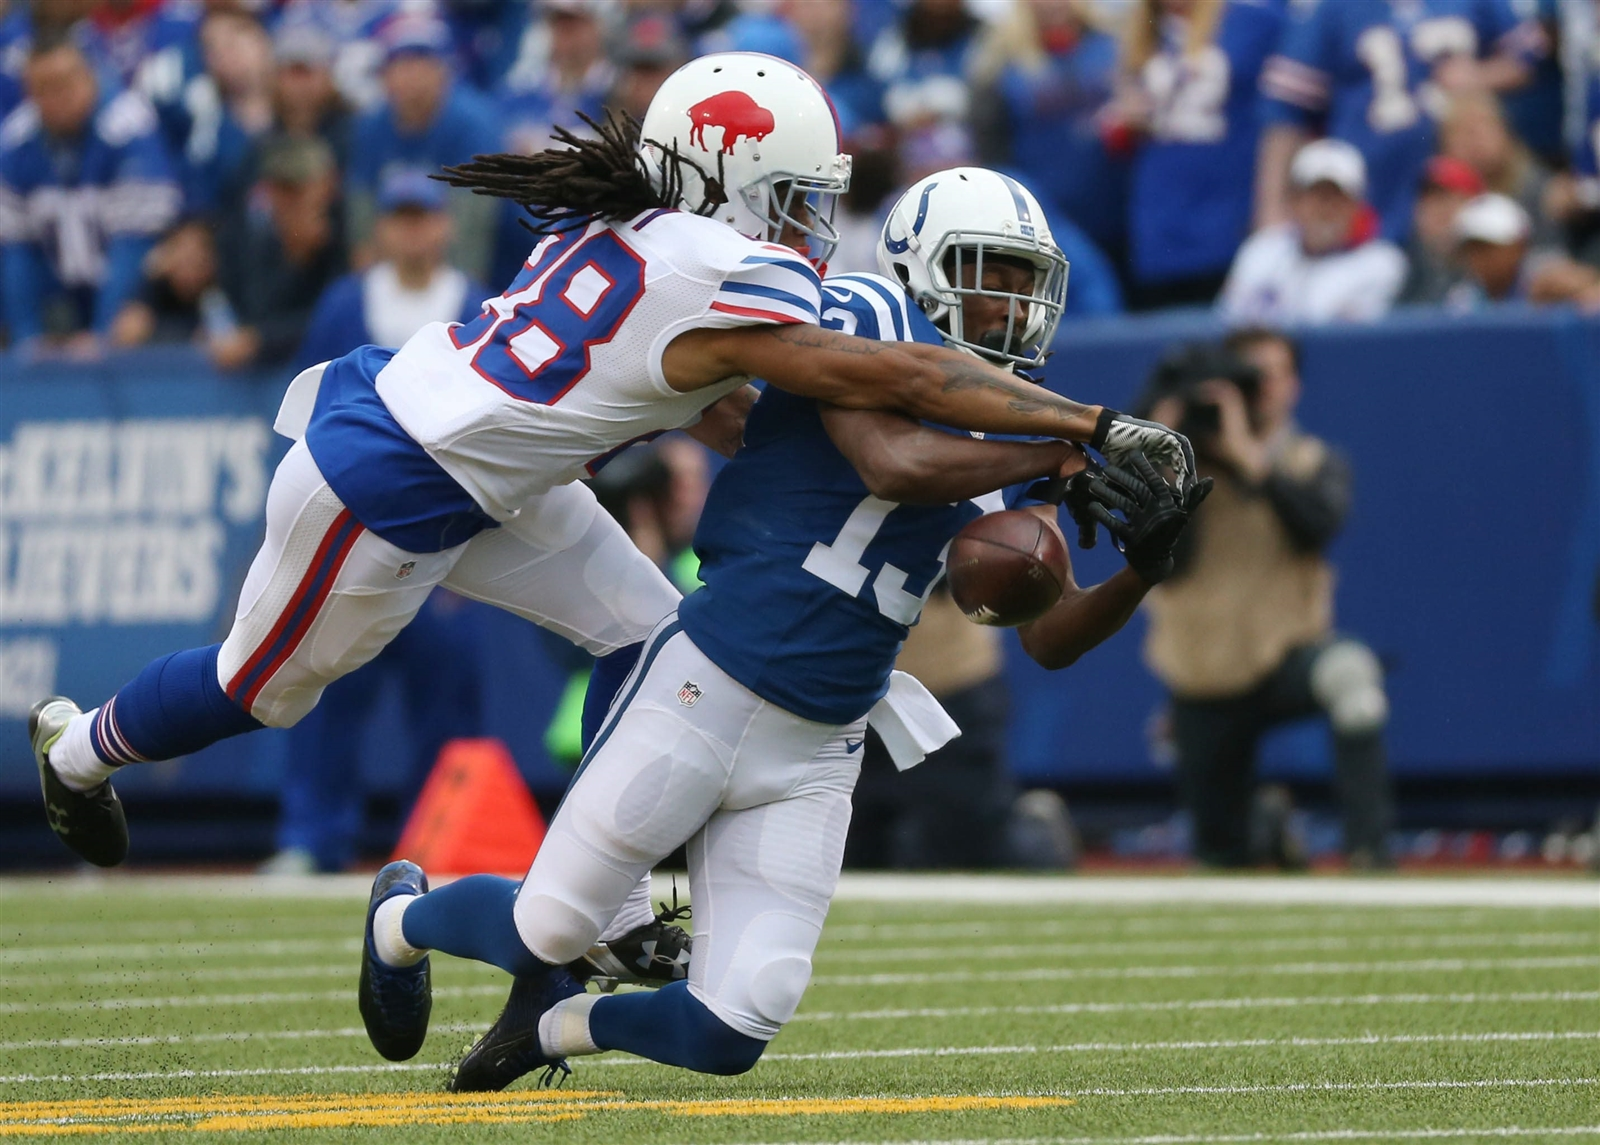 Ronald Darby breaks up a pass in the first quarter. (James P. McCoy/Buffalo News)